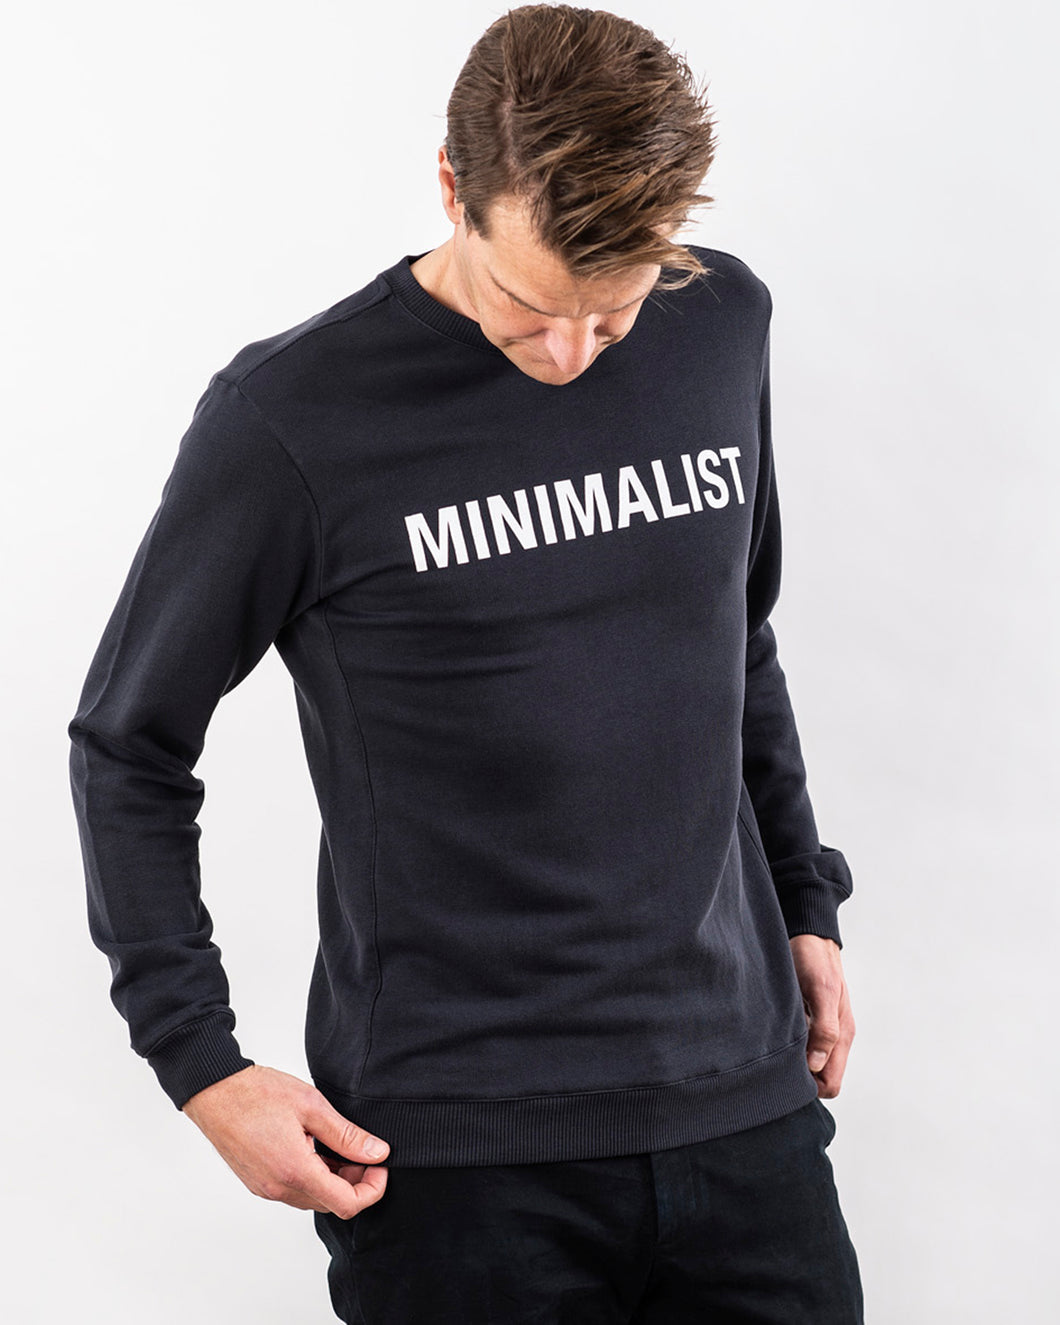 MINIMALIST TENCEL™ SWEATSHIRT DARK NAVY LIMITED EDITION